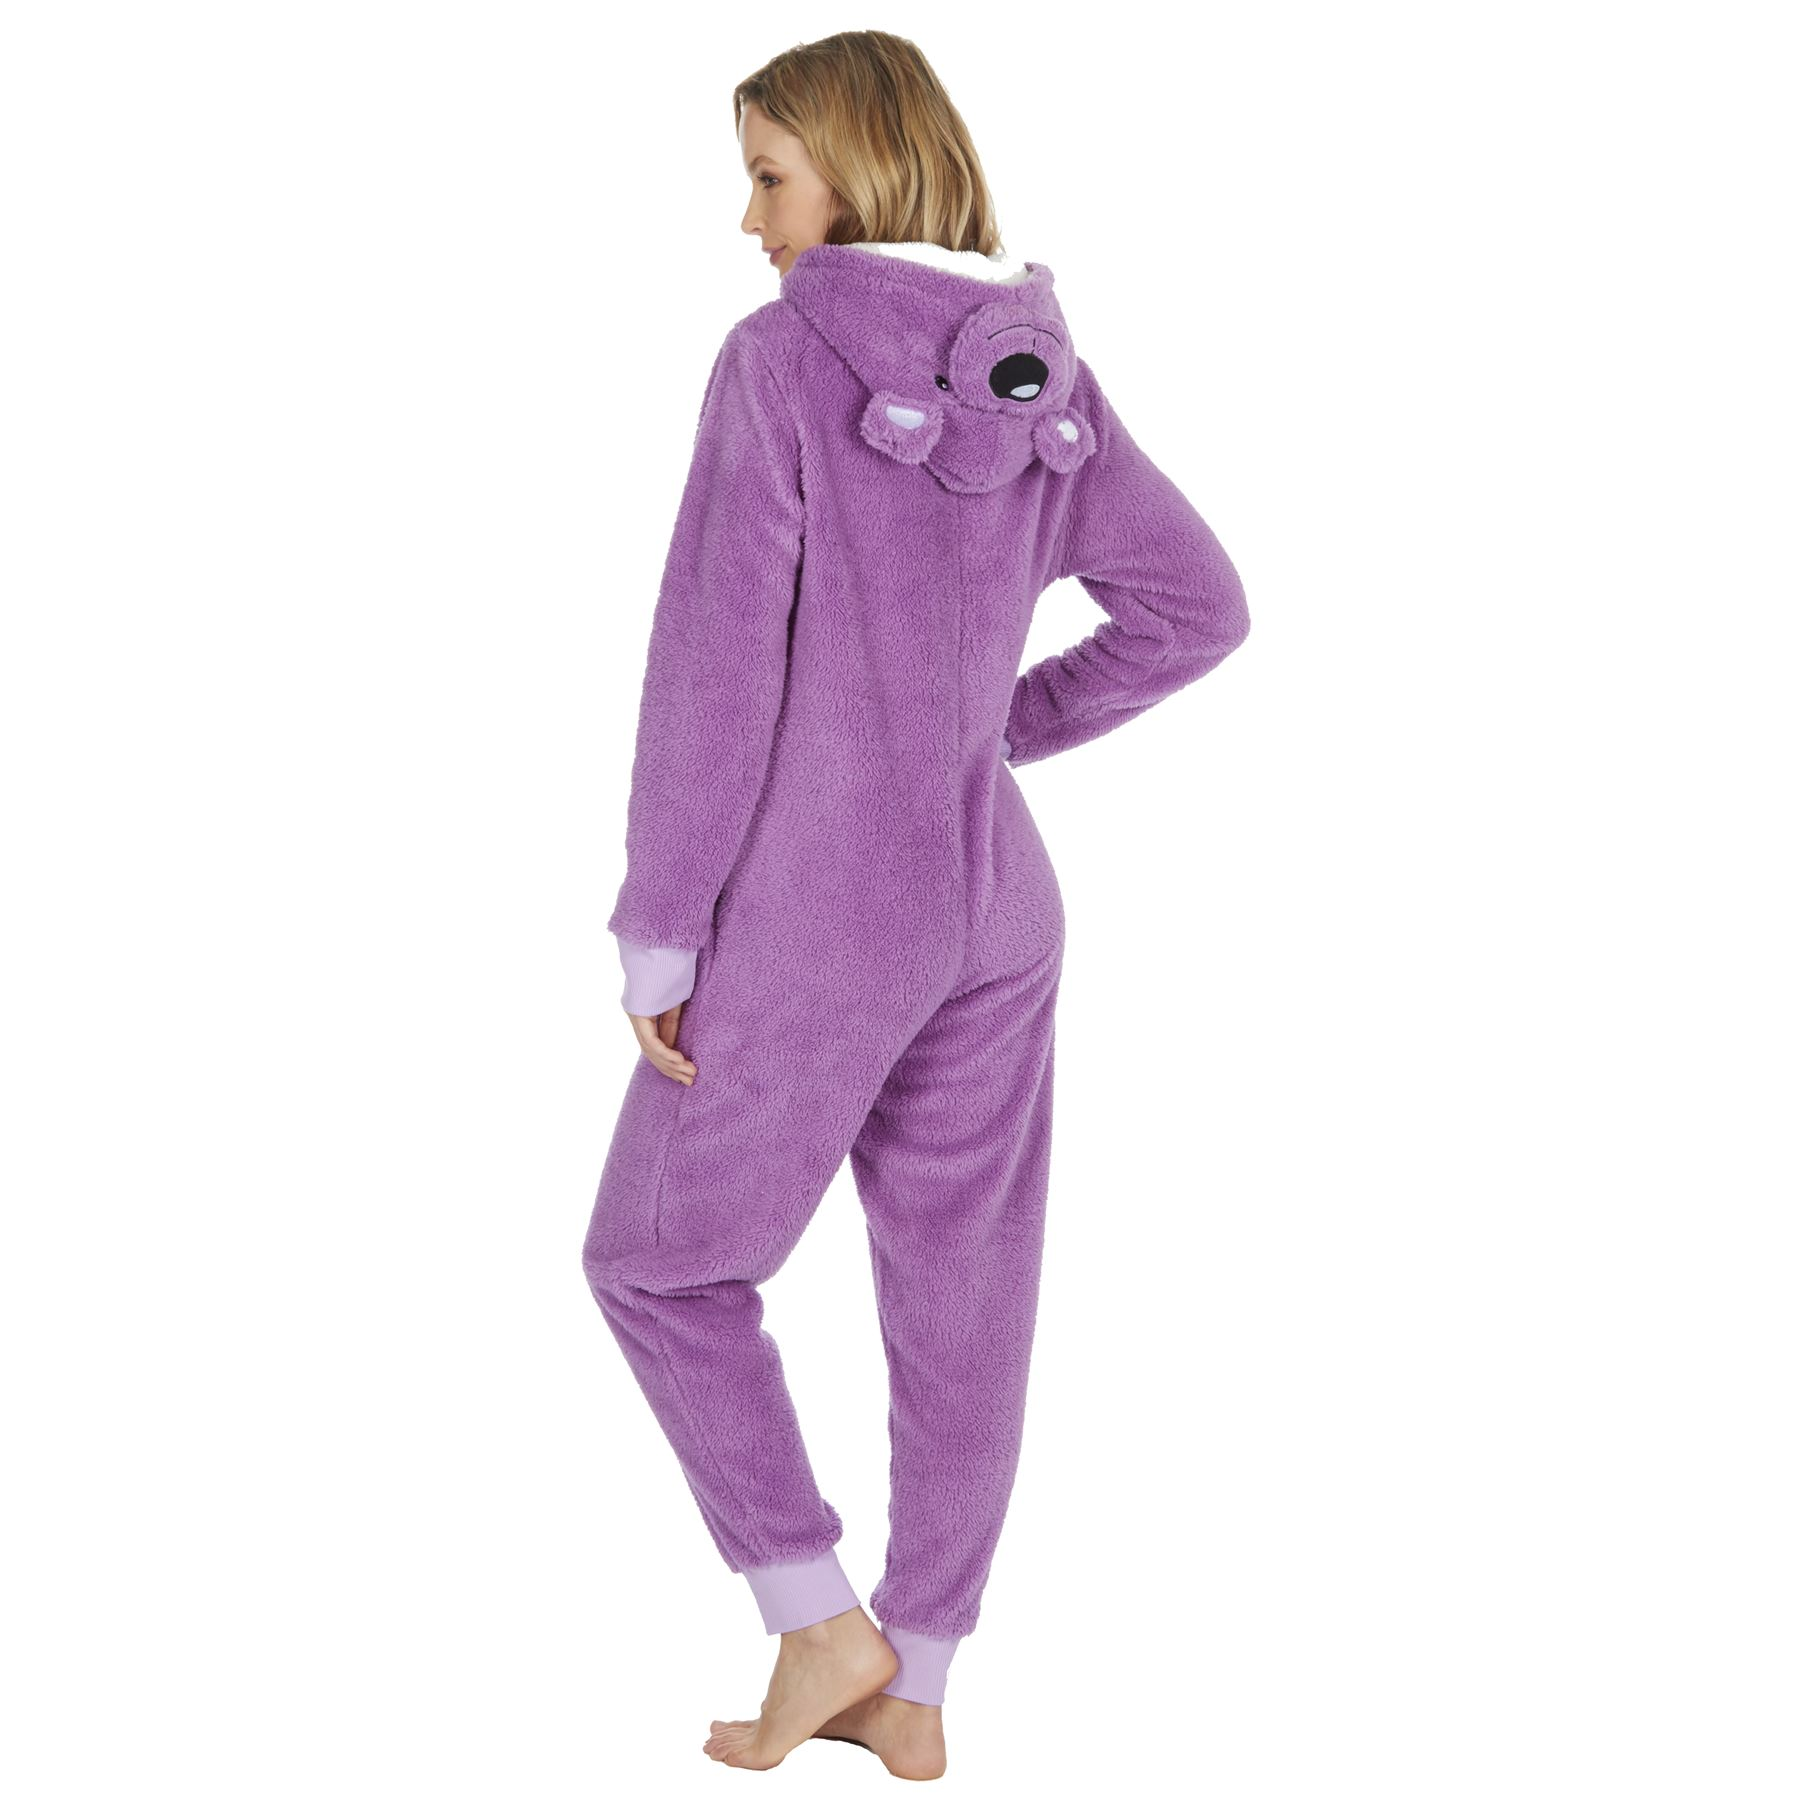 Ladies-Womens-Girls-Fleece-All-In-One-Pyjamas-Outfit-Jumpsuit-Costume-Size-6-18 thumbnail 8